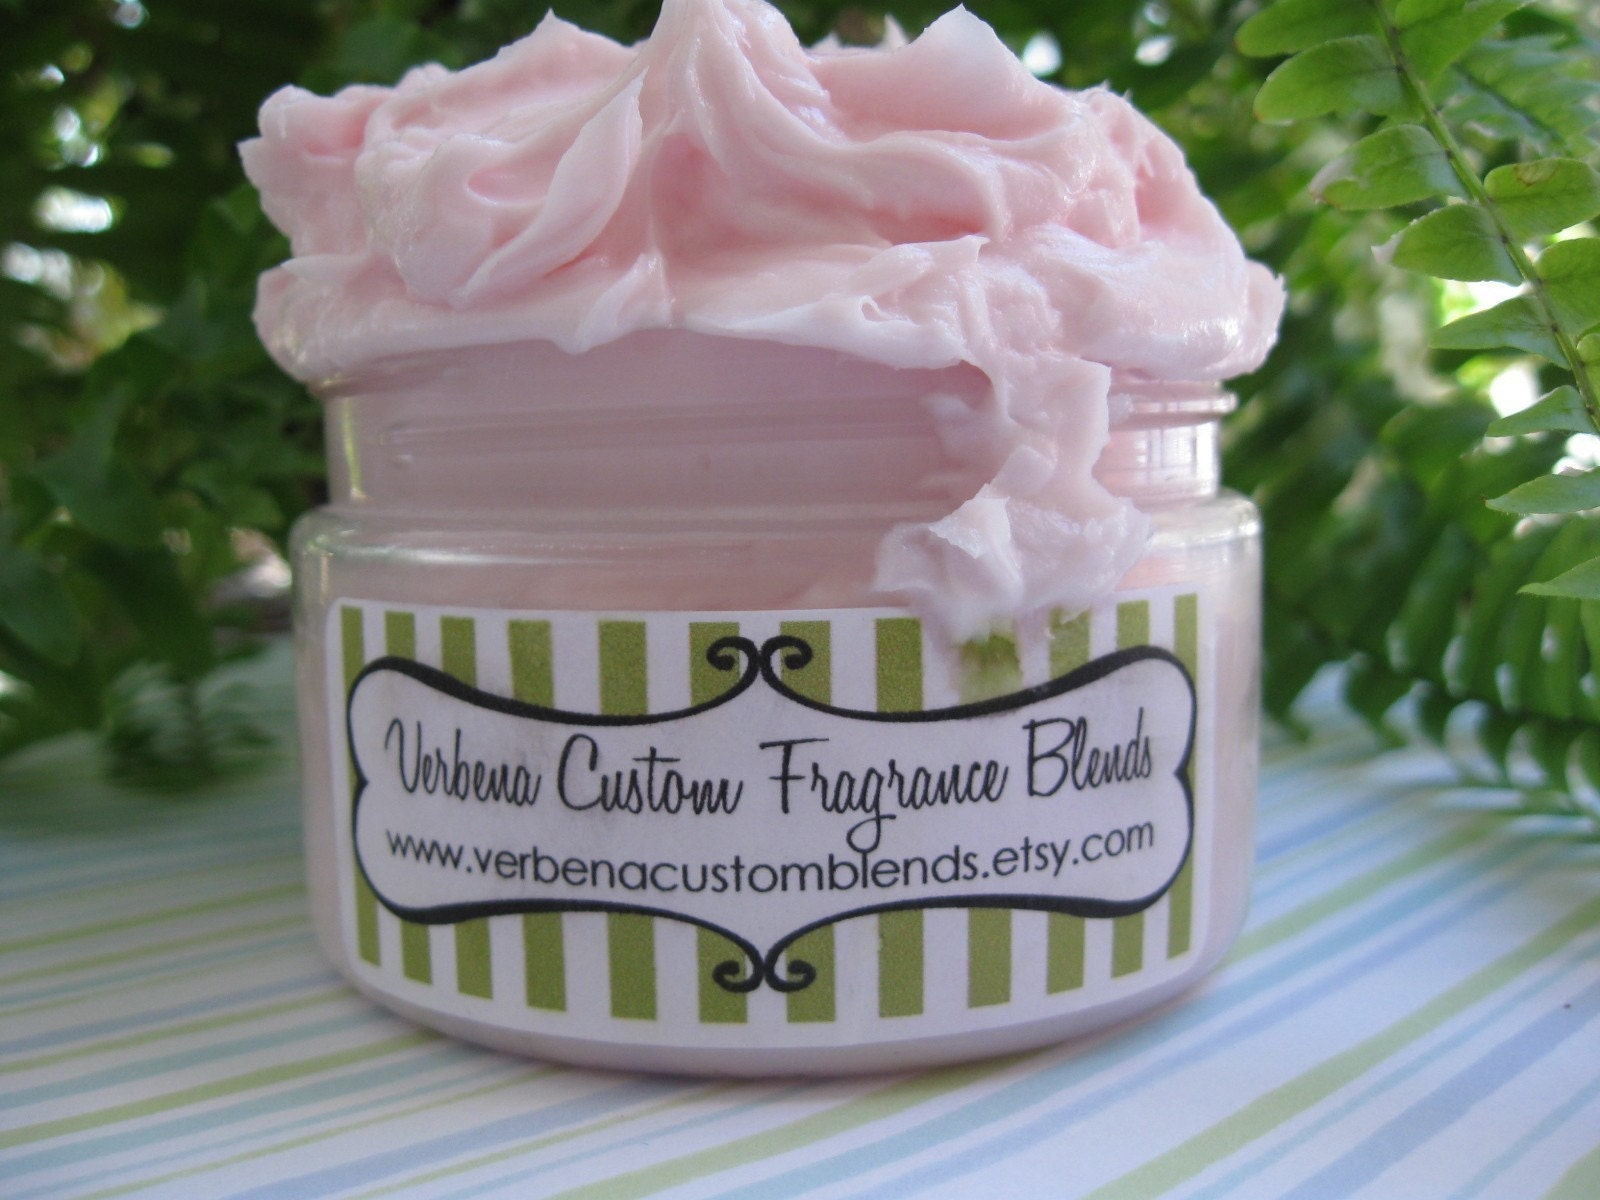 PINK SUGARED MARSHMALLOW scented WHIPPED CREAM SOAP 4 oz. -Vegan Friendly